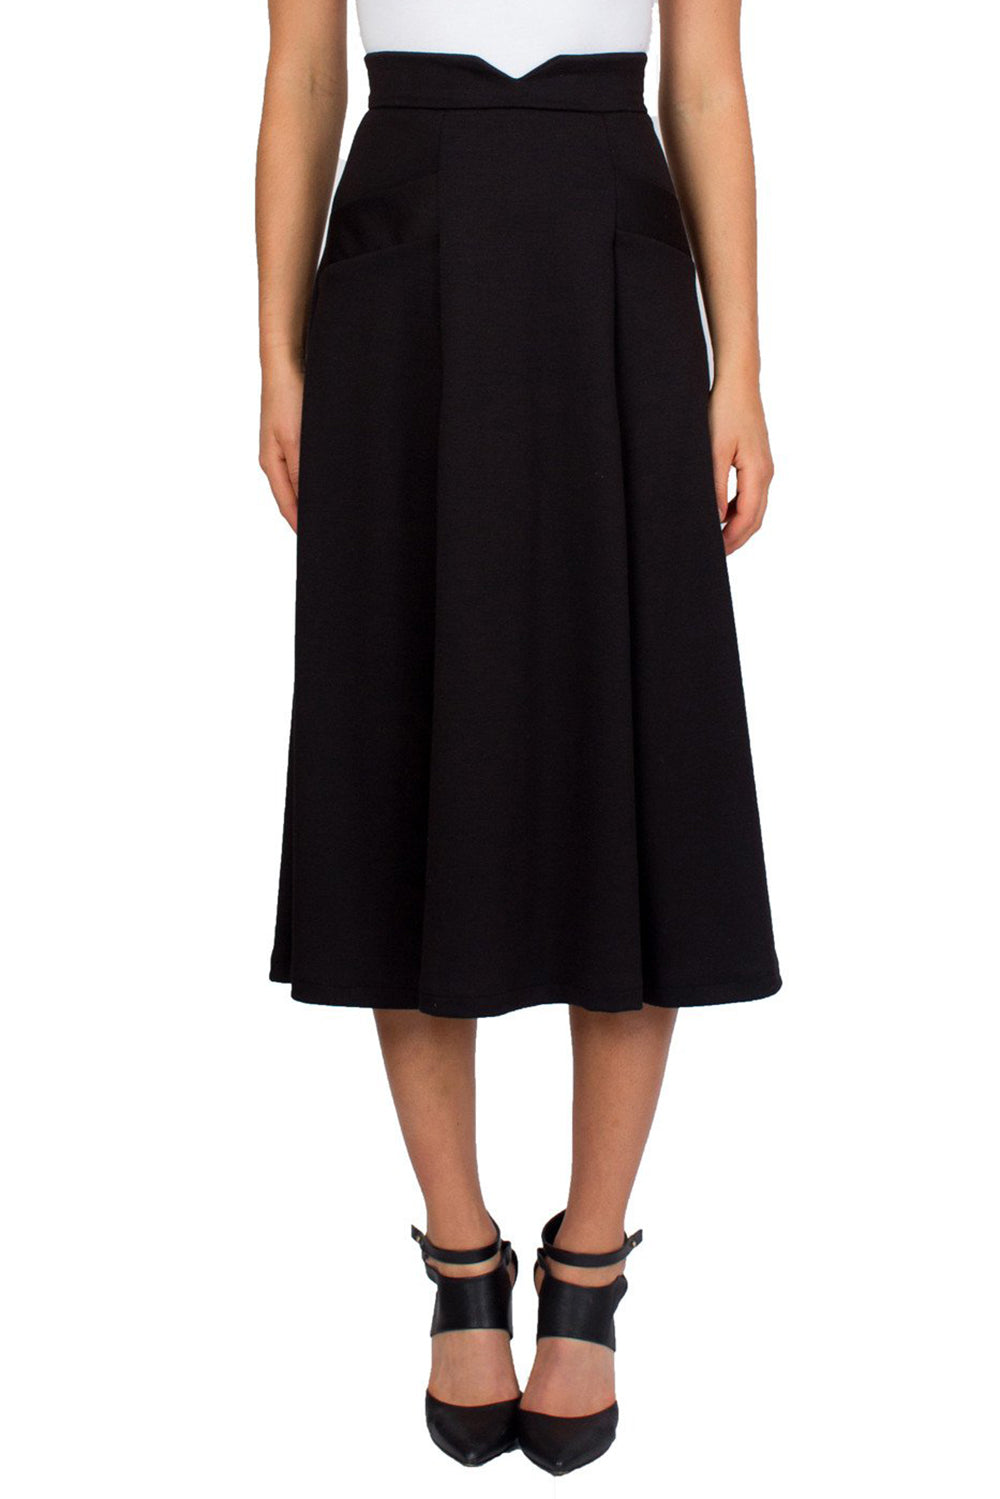 Black Swing Midi Skirt With Slant Pockets and Notch Detail on Waist - Tetiana K - 2